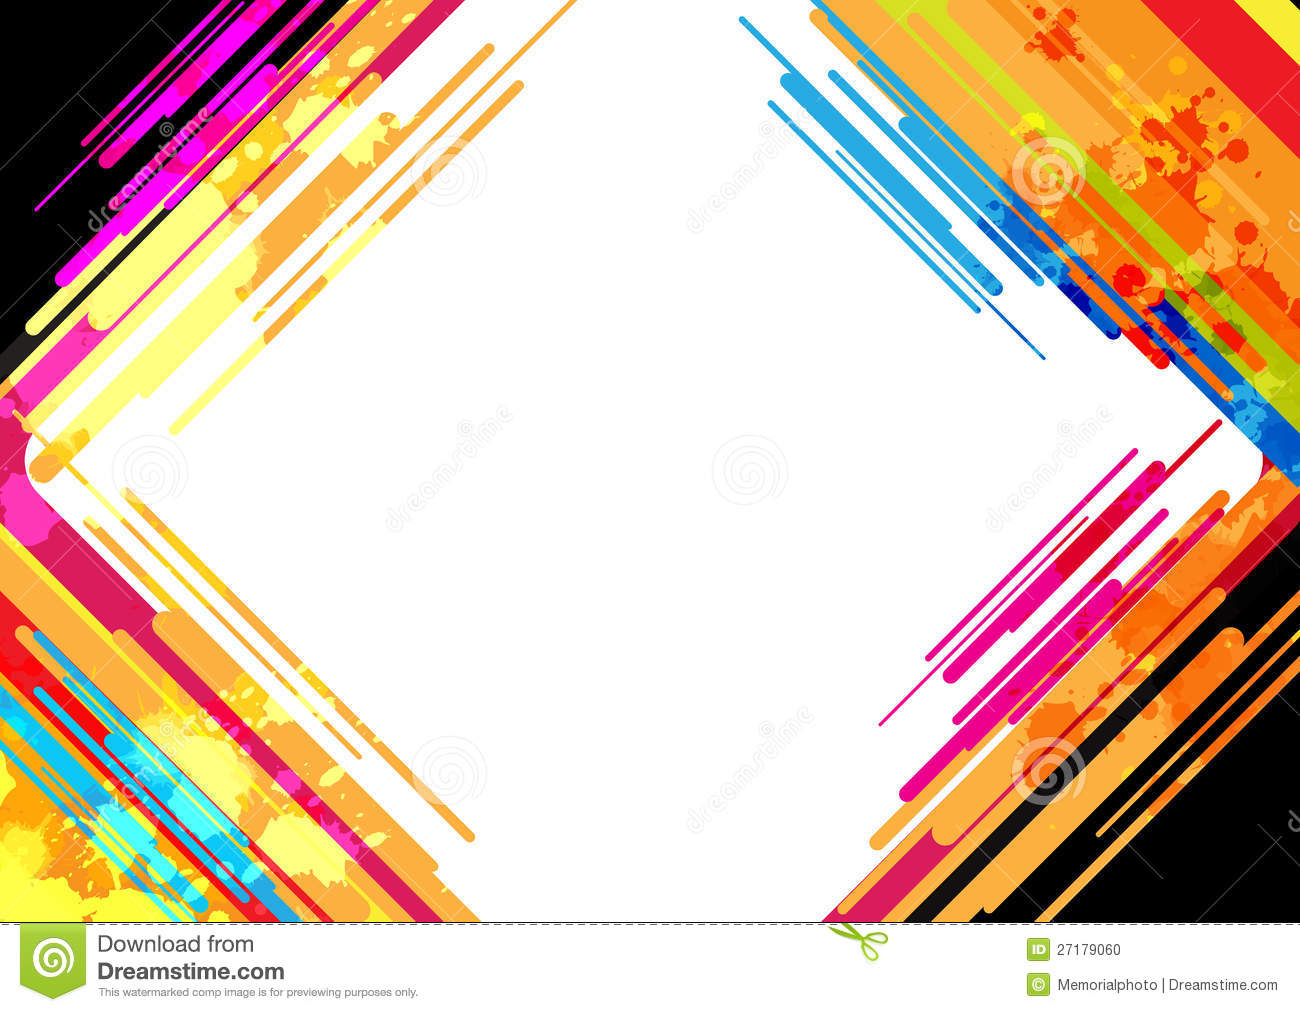 Simple Wallpapers Colors Fall Abstract Colorful Frame Design Stock Vector Illustration